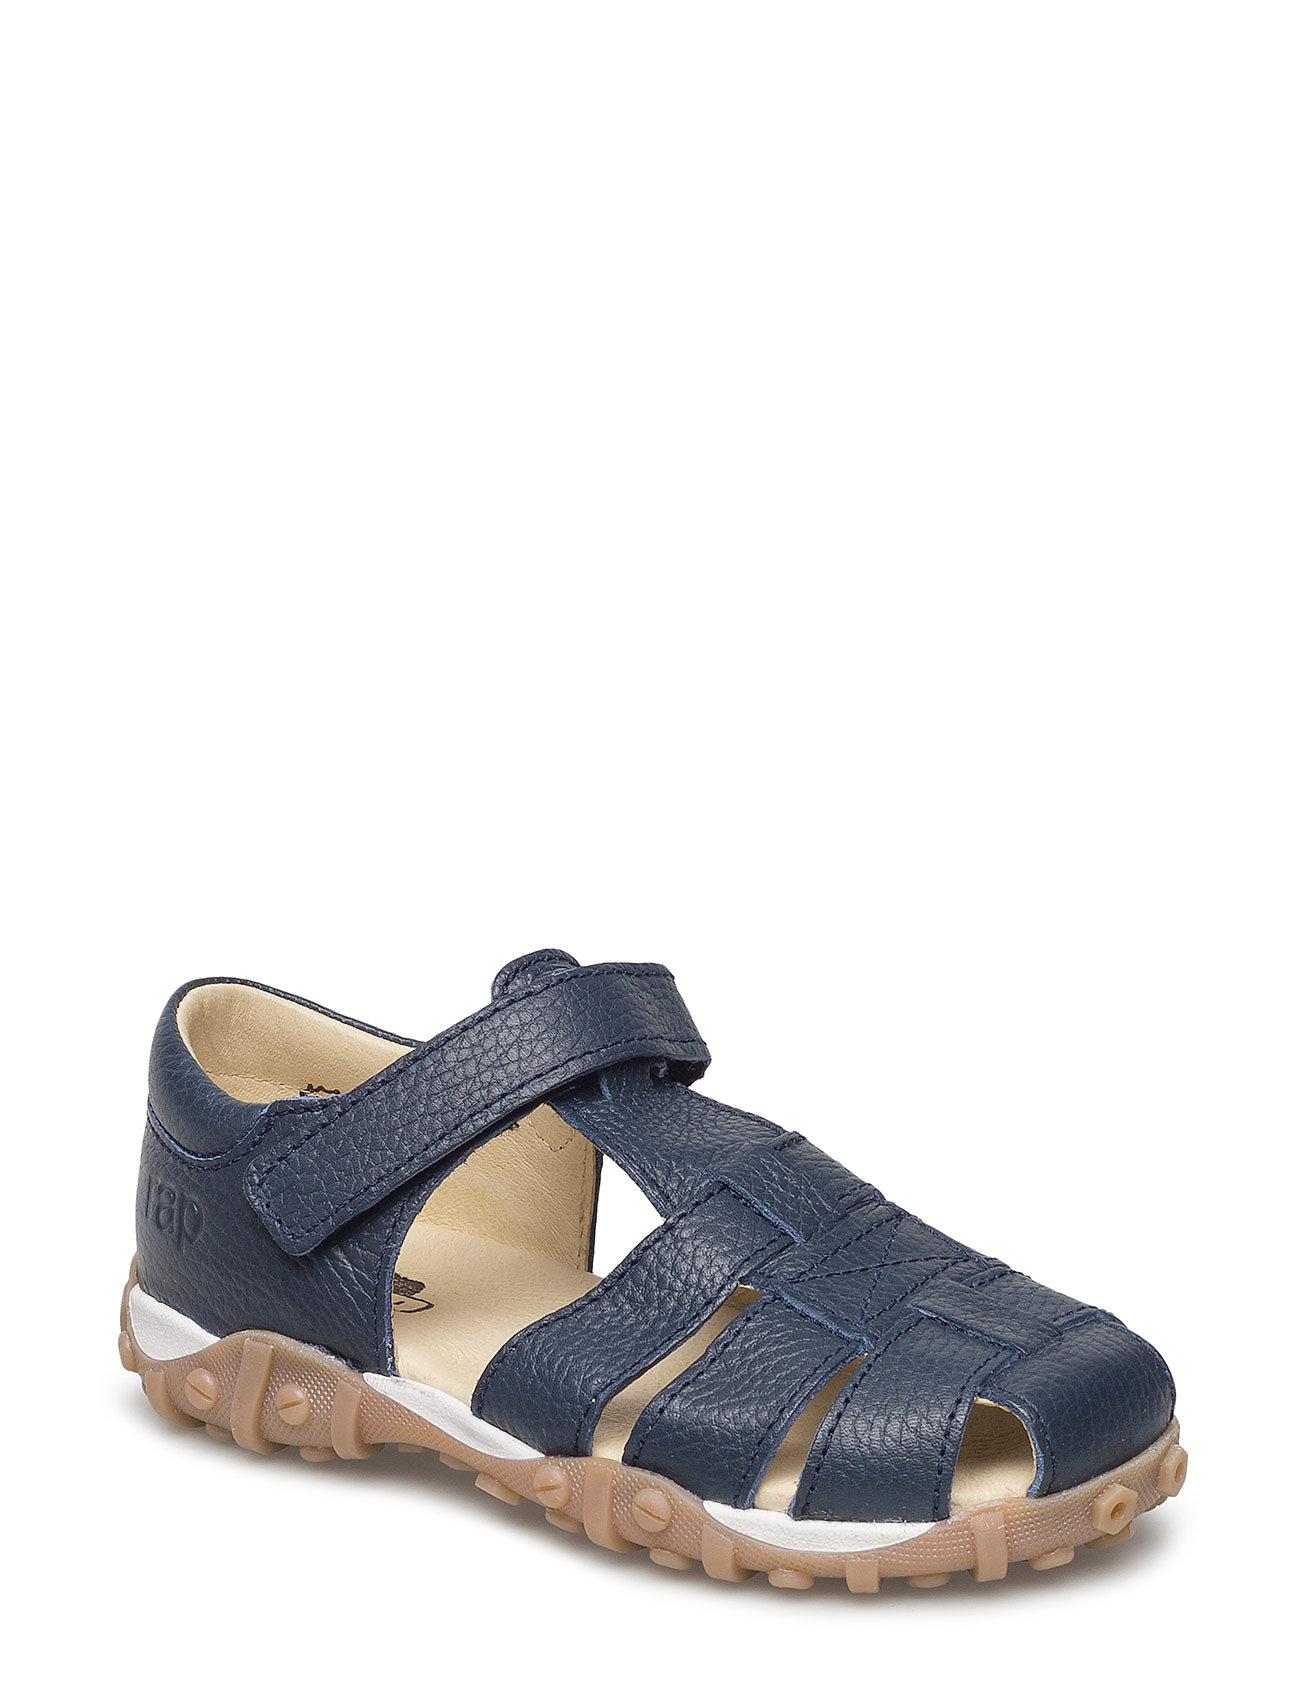 Ecological Closed Sandal, Medium Fit thumbnail